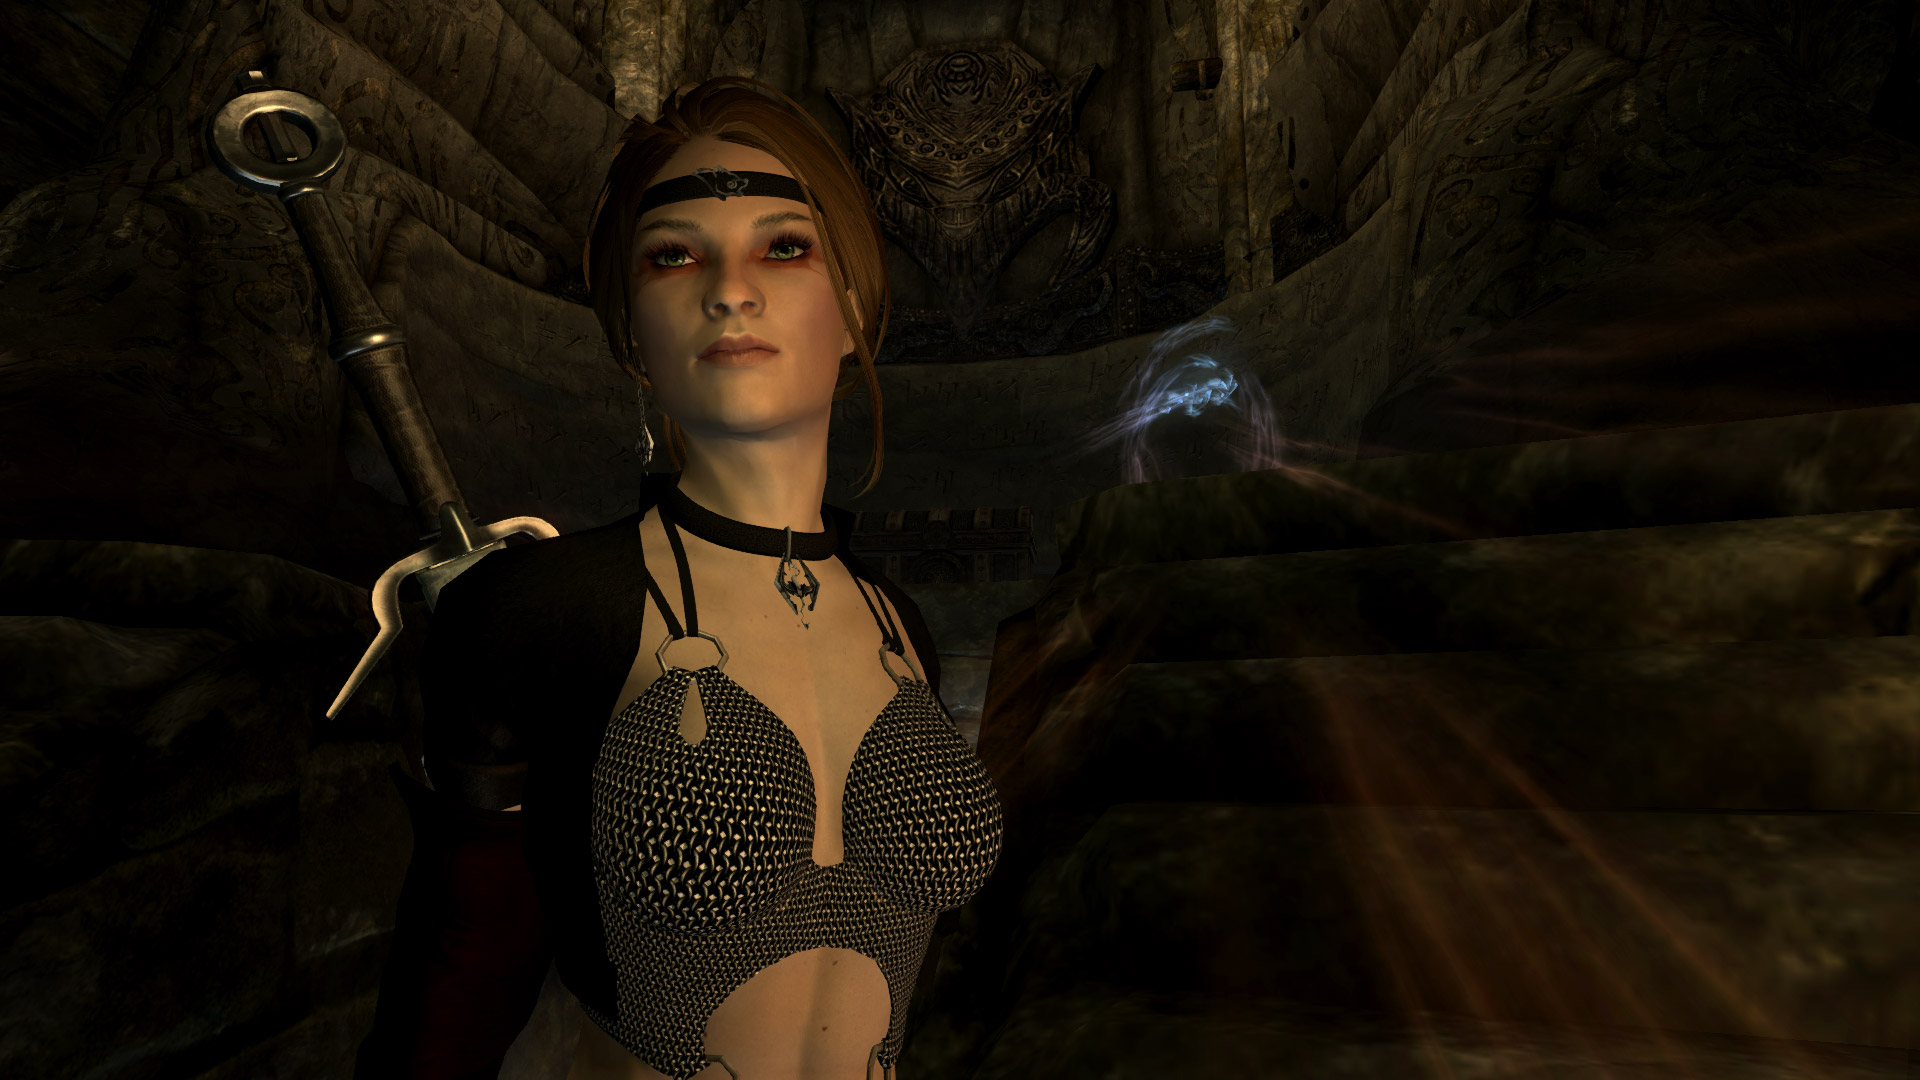 Perils of escaped skyrim slavegirl 11 - 1 2